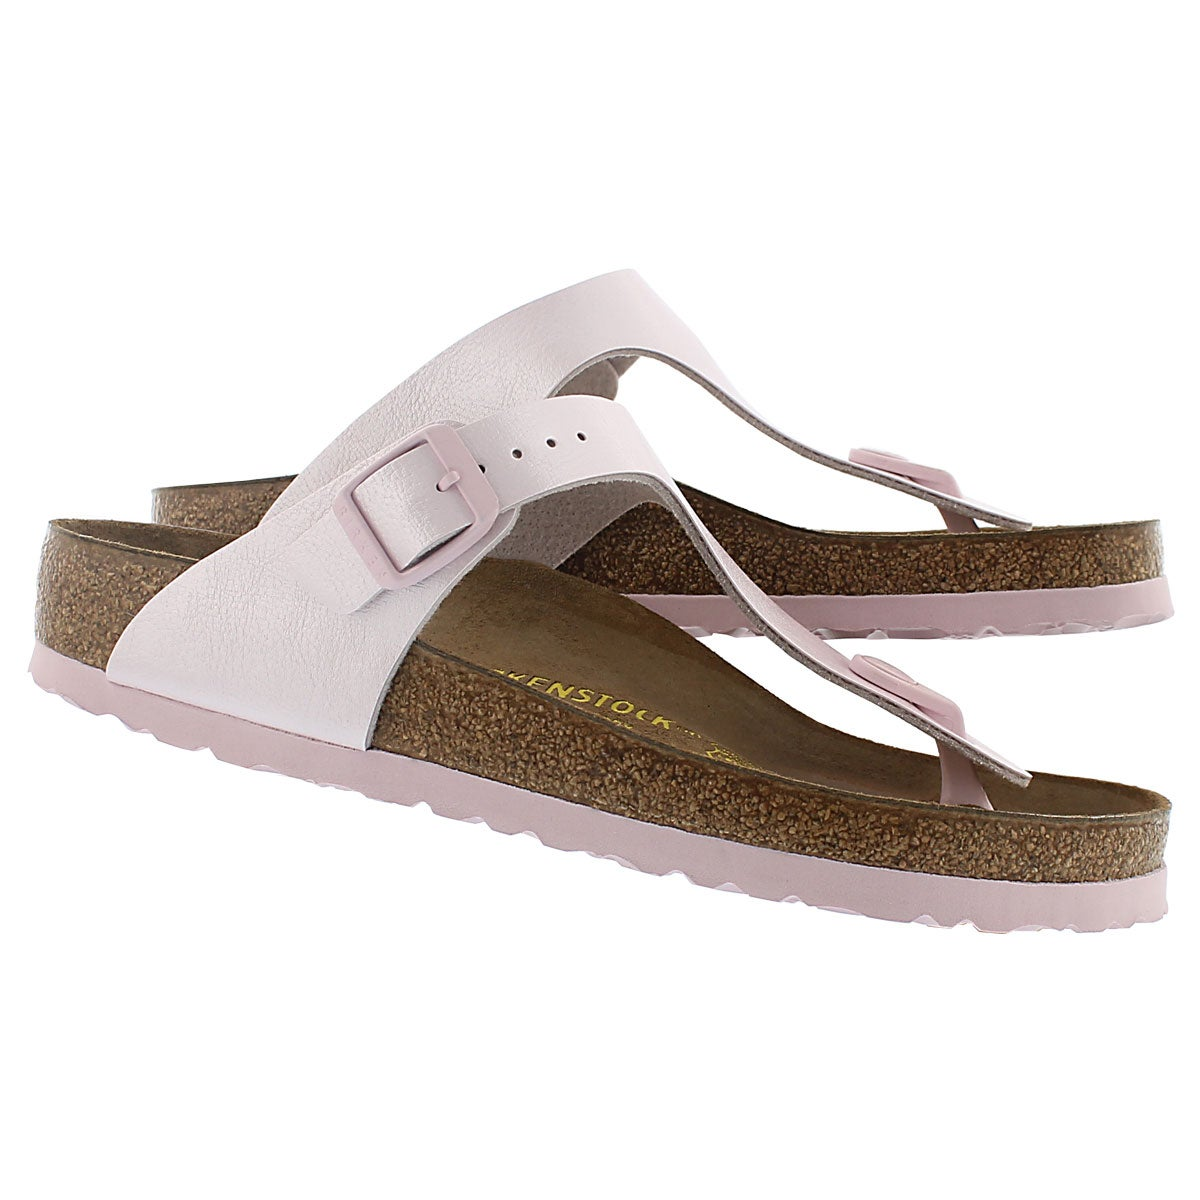 Lds Gizeh graceful rose thong sandal